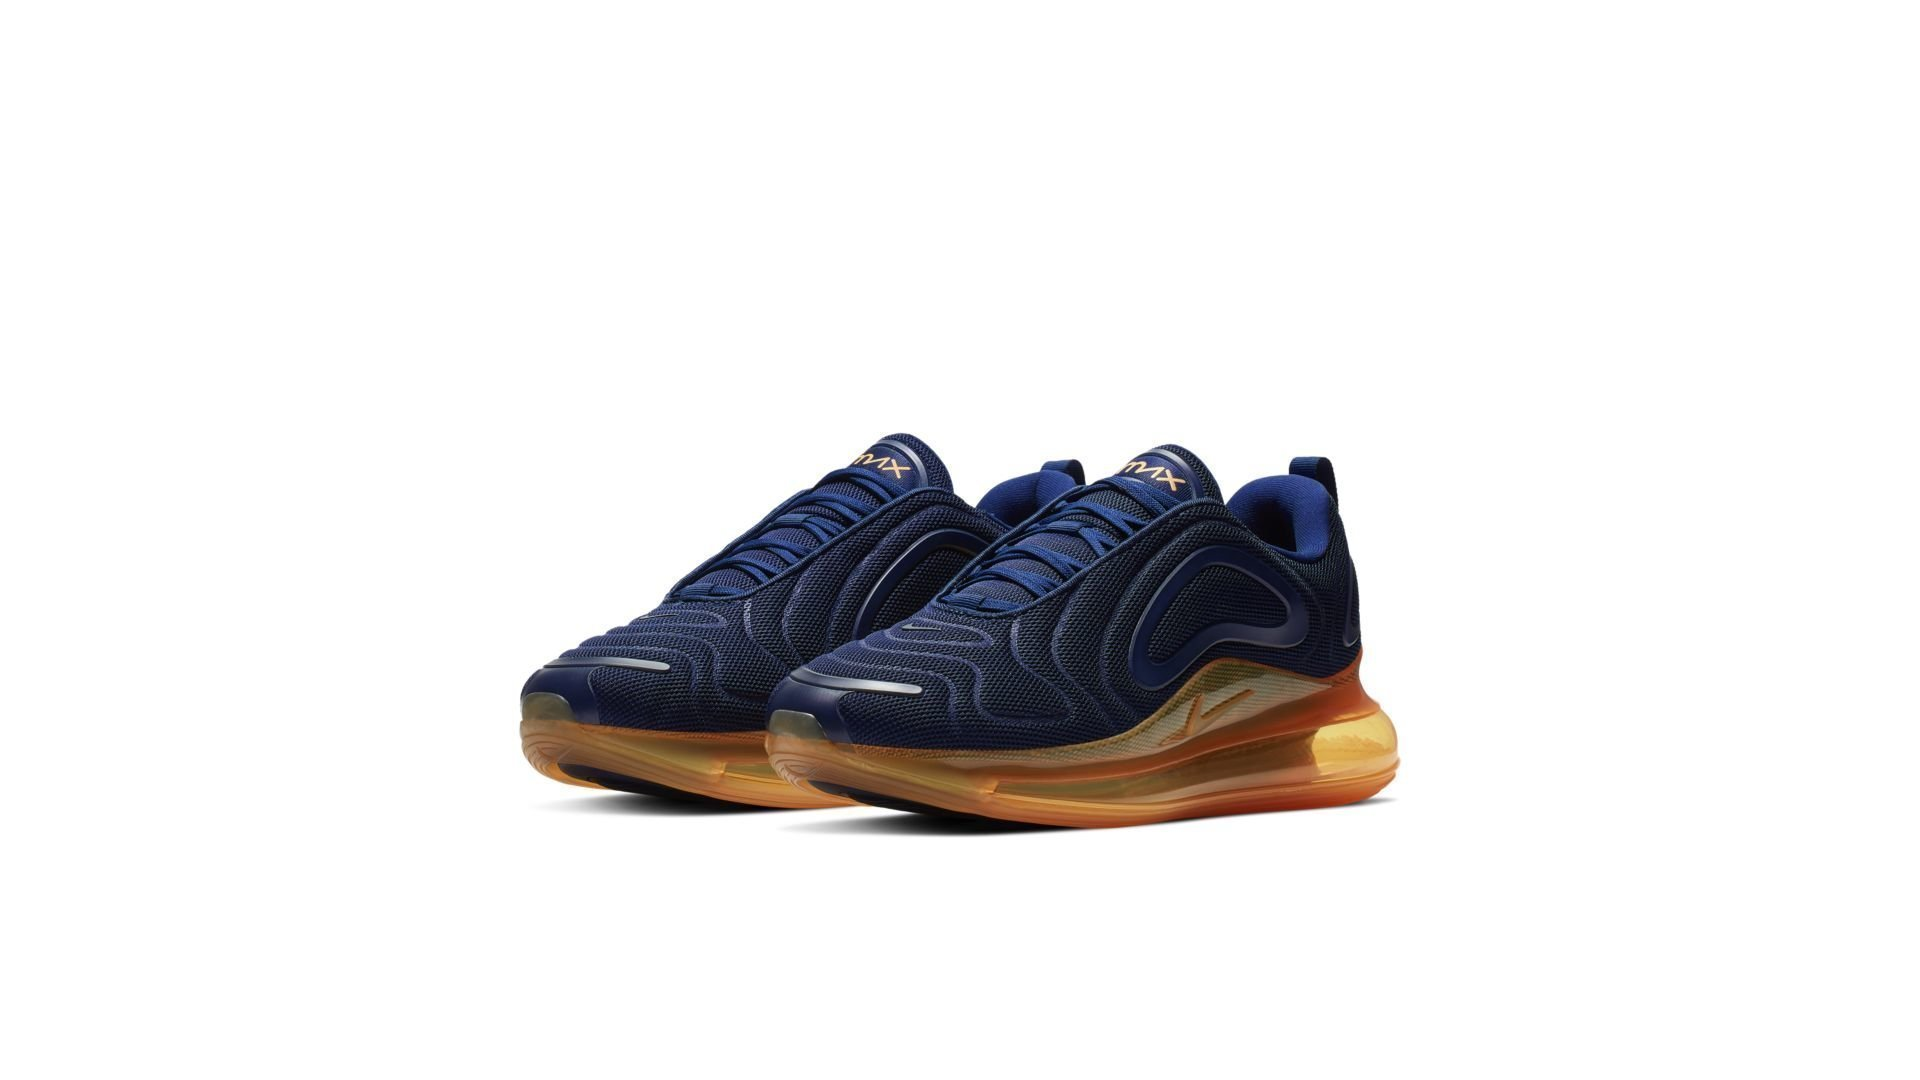 Nike Air Max 720 Navy + Orange AO2924 401 Release Date